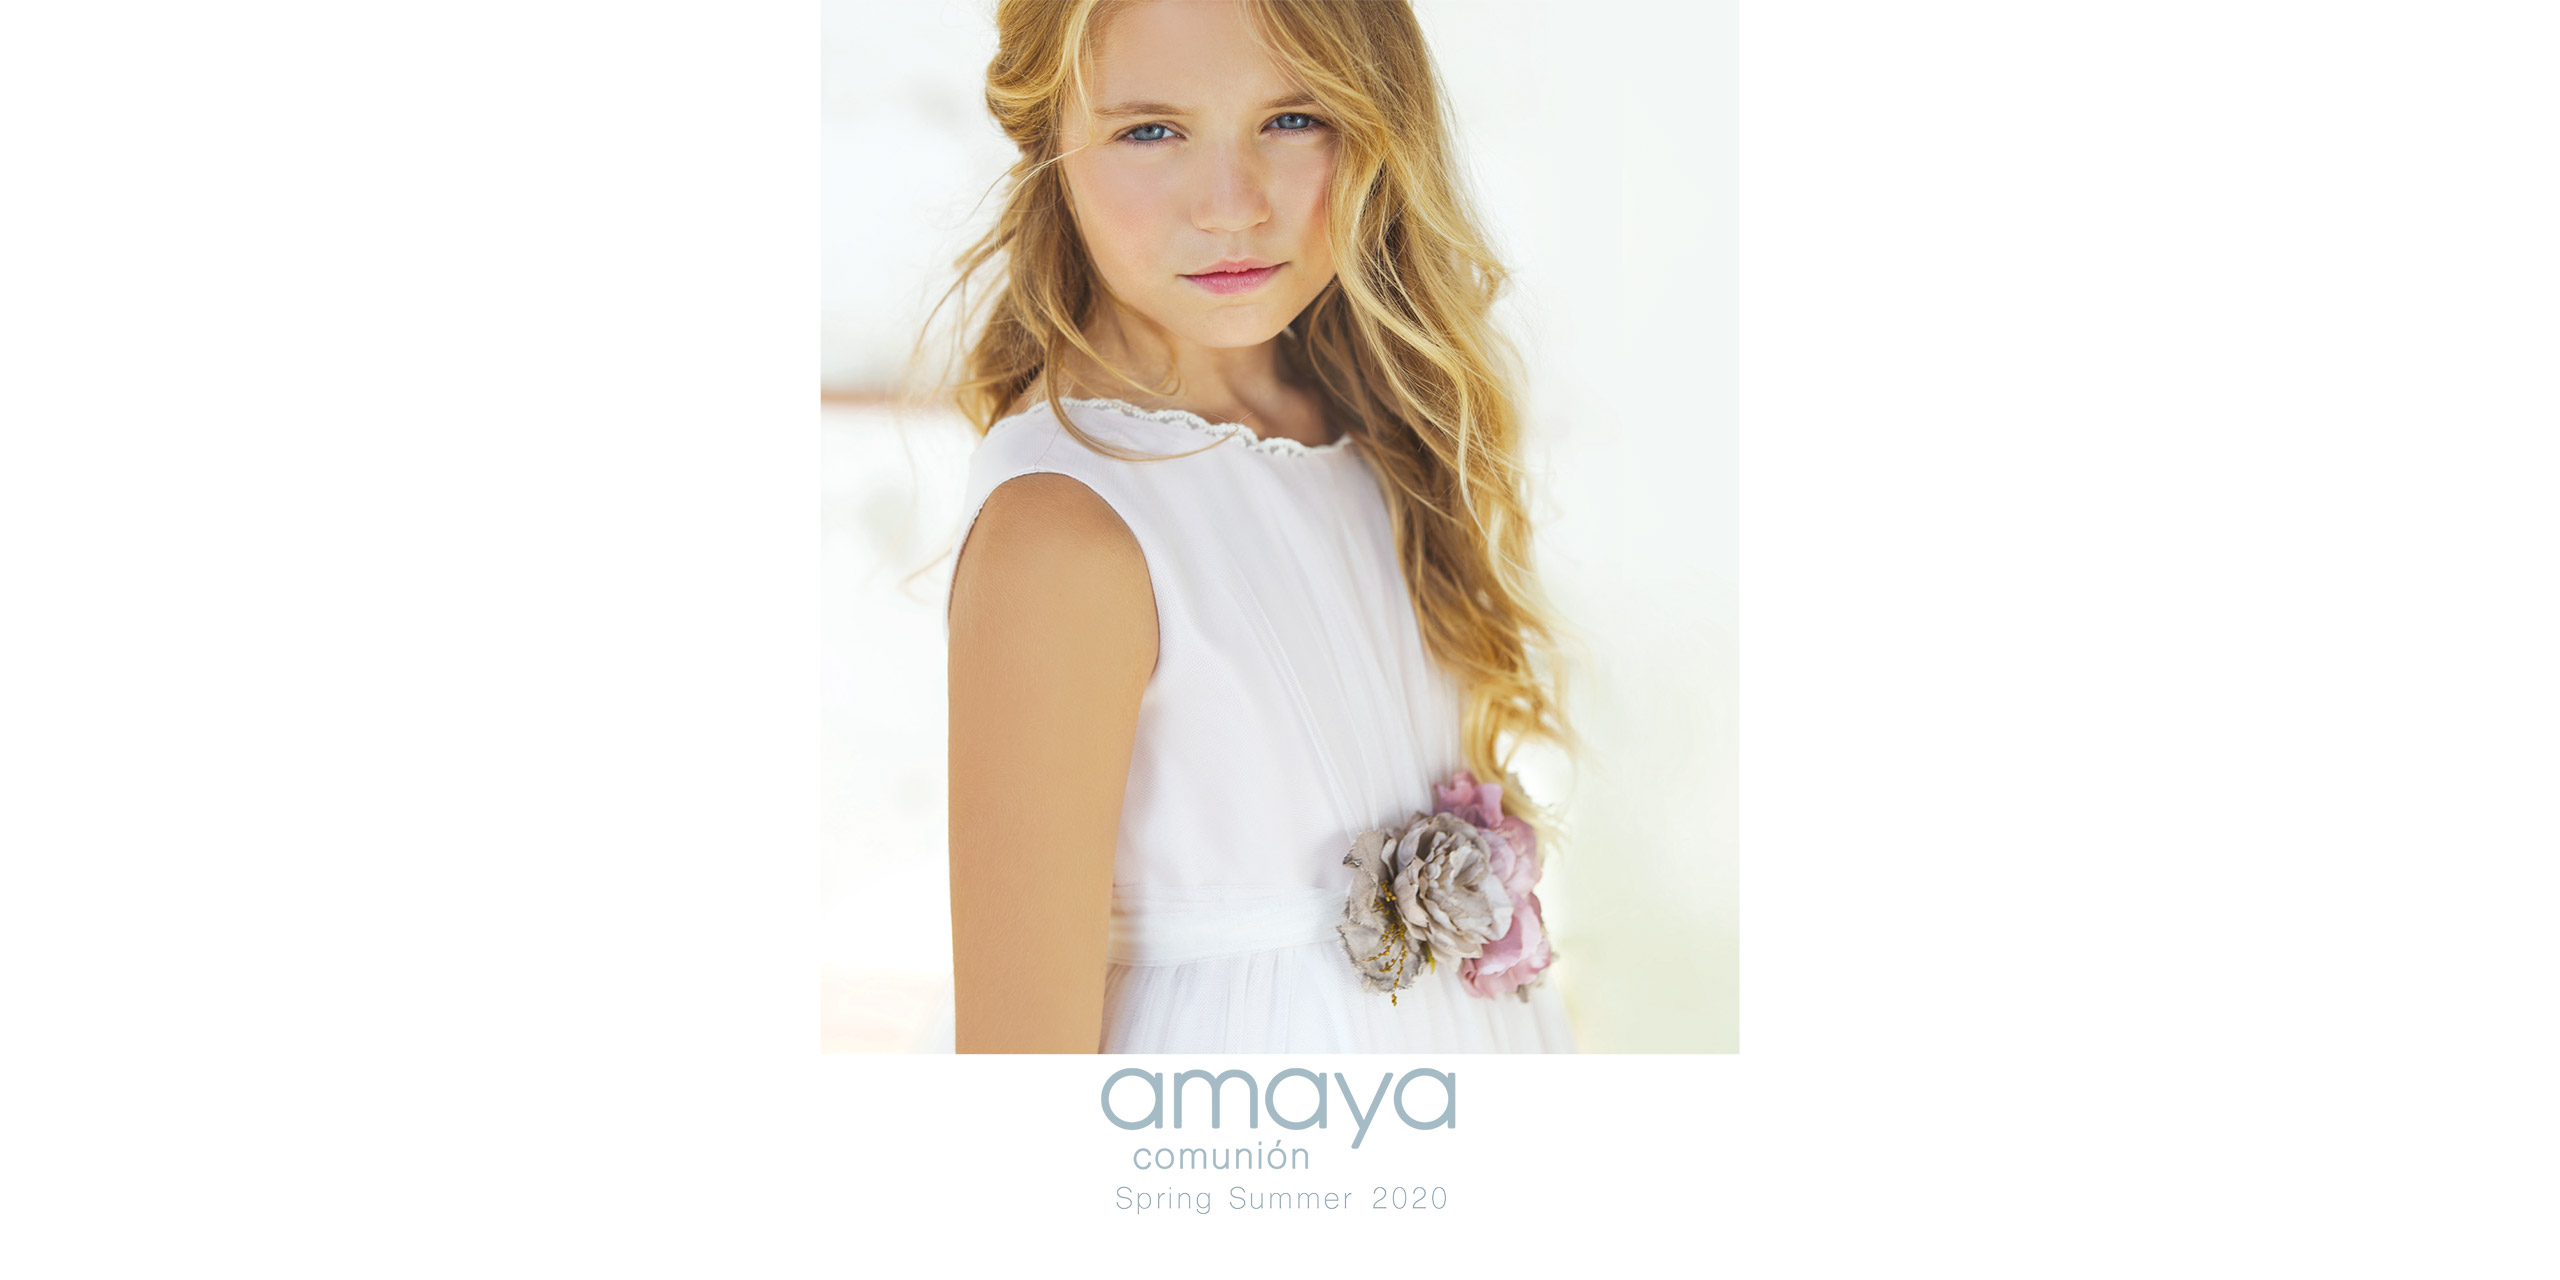 amaya-comunion-catalogo-2p-01